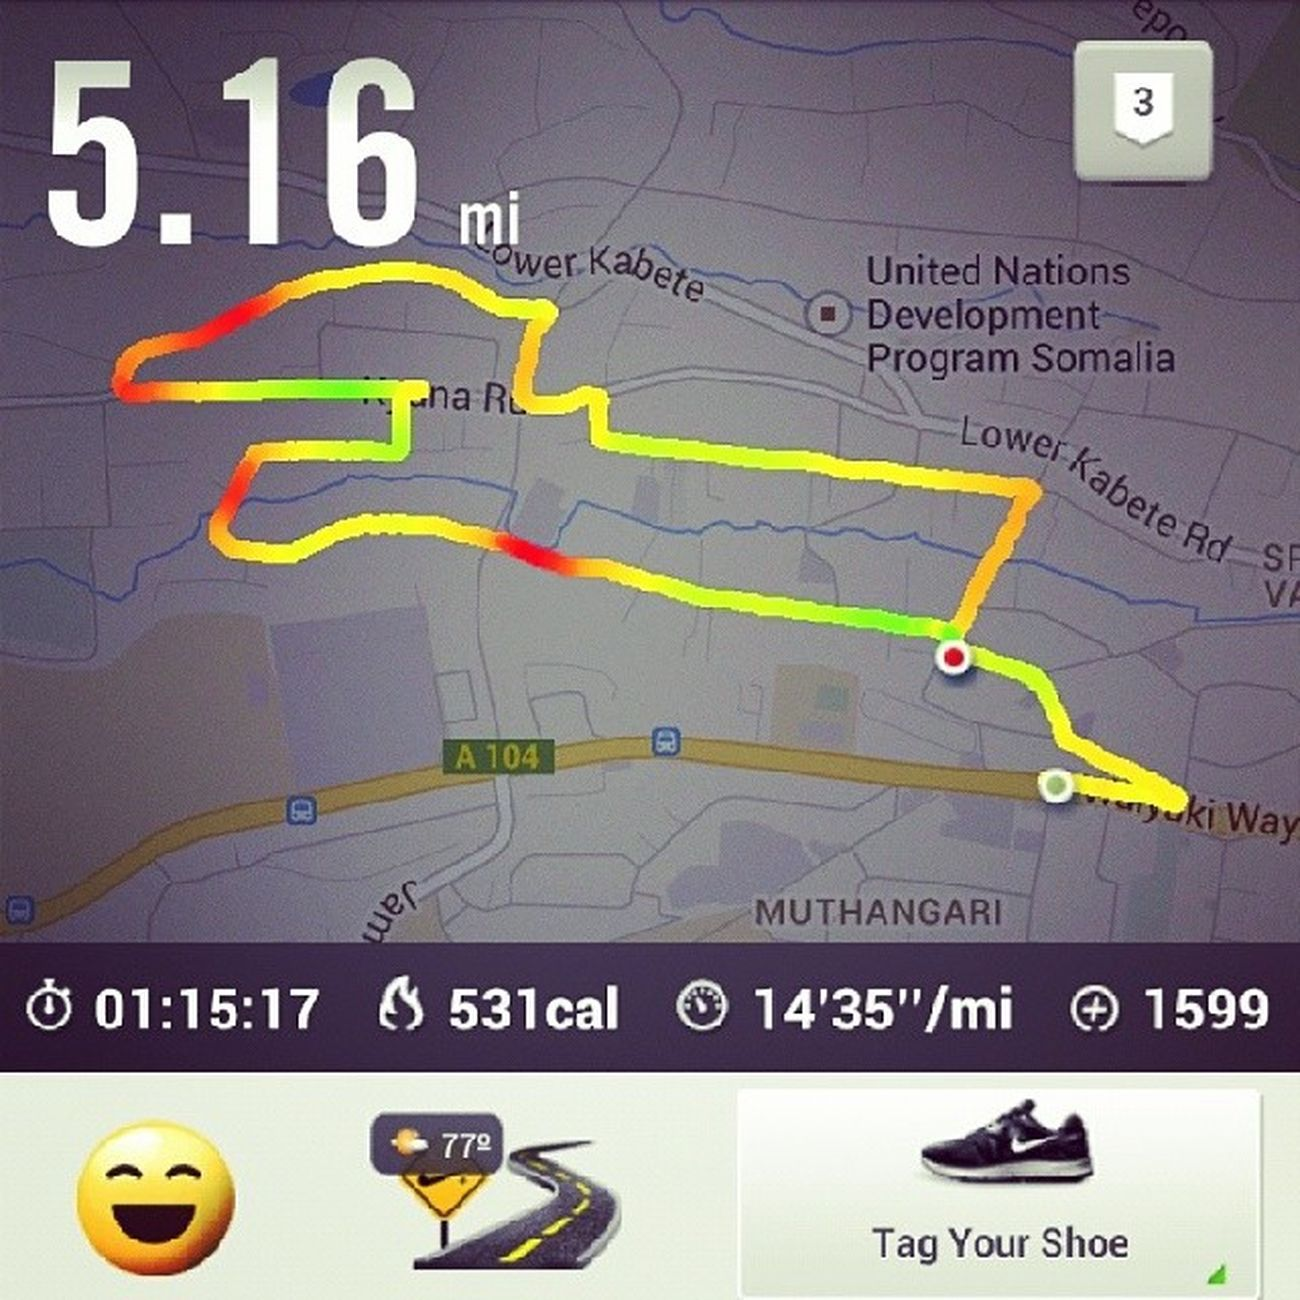 Yesterday's run. Change of route plan for tomorrow underway